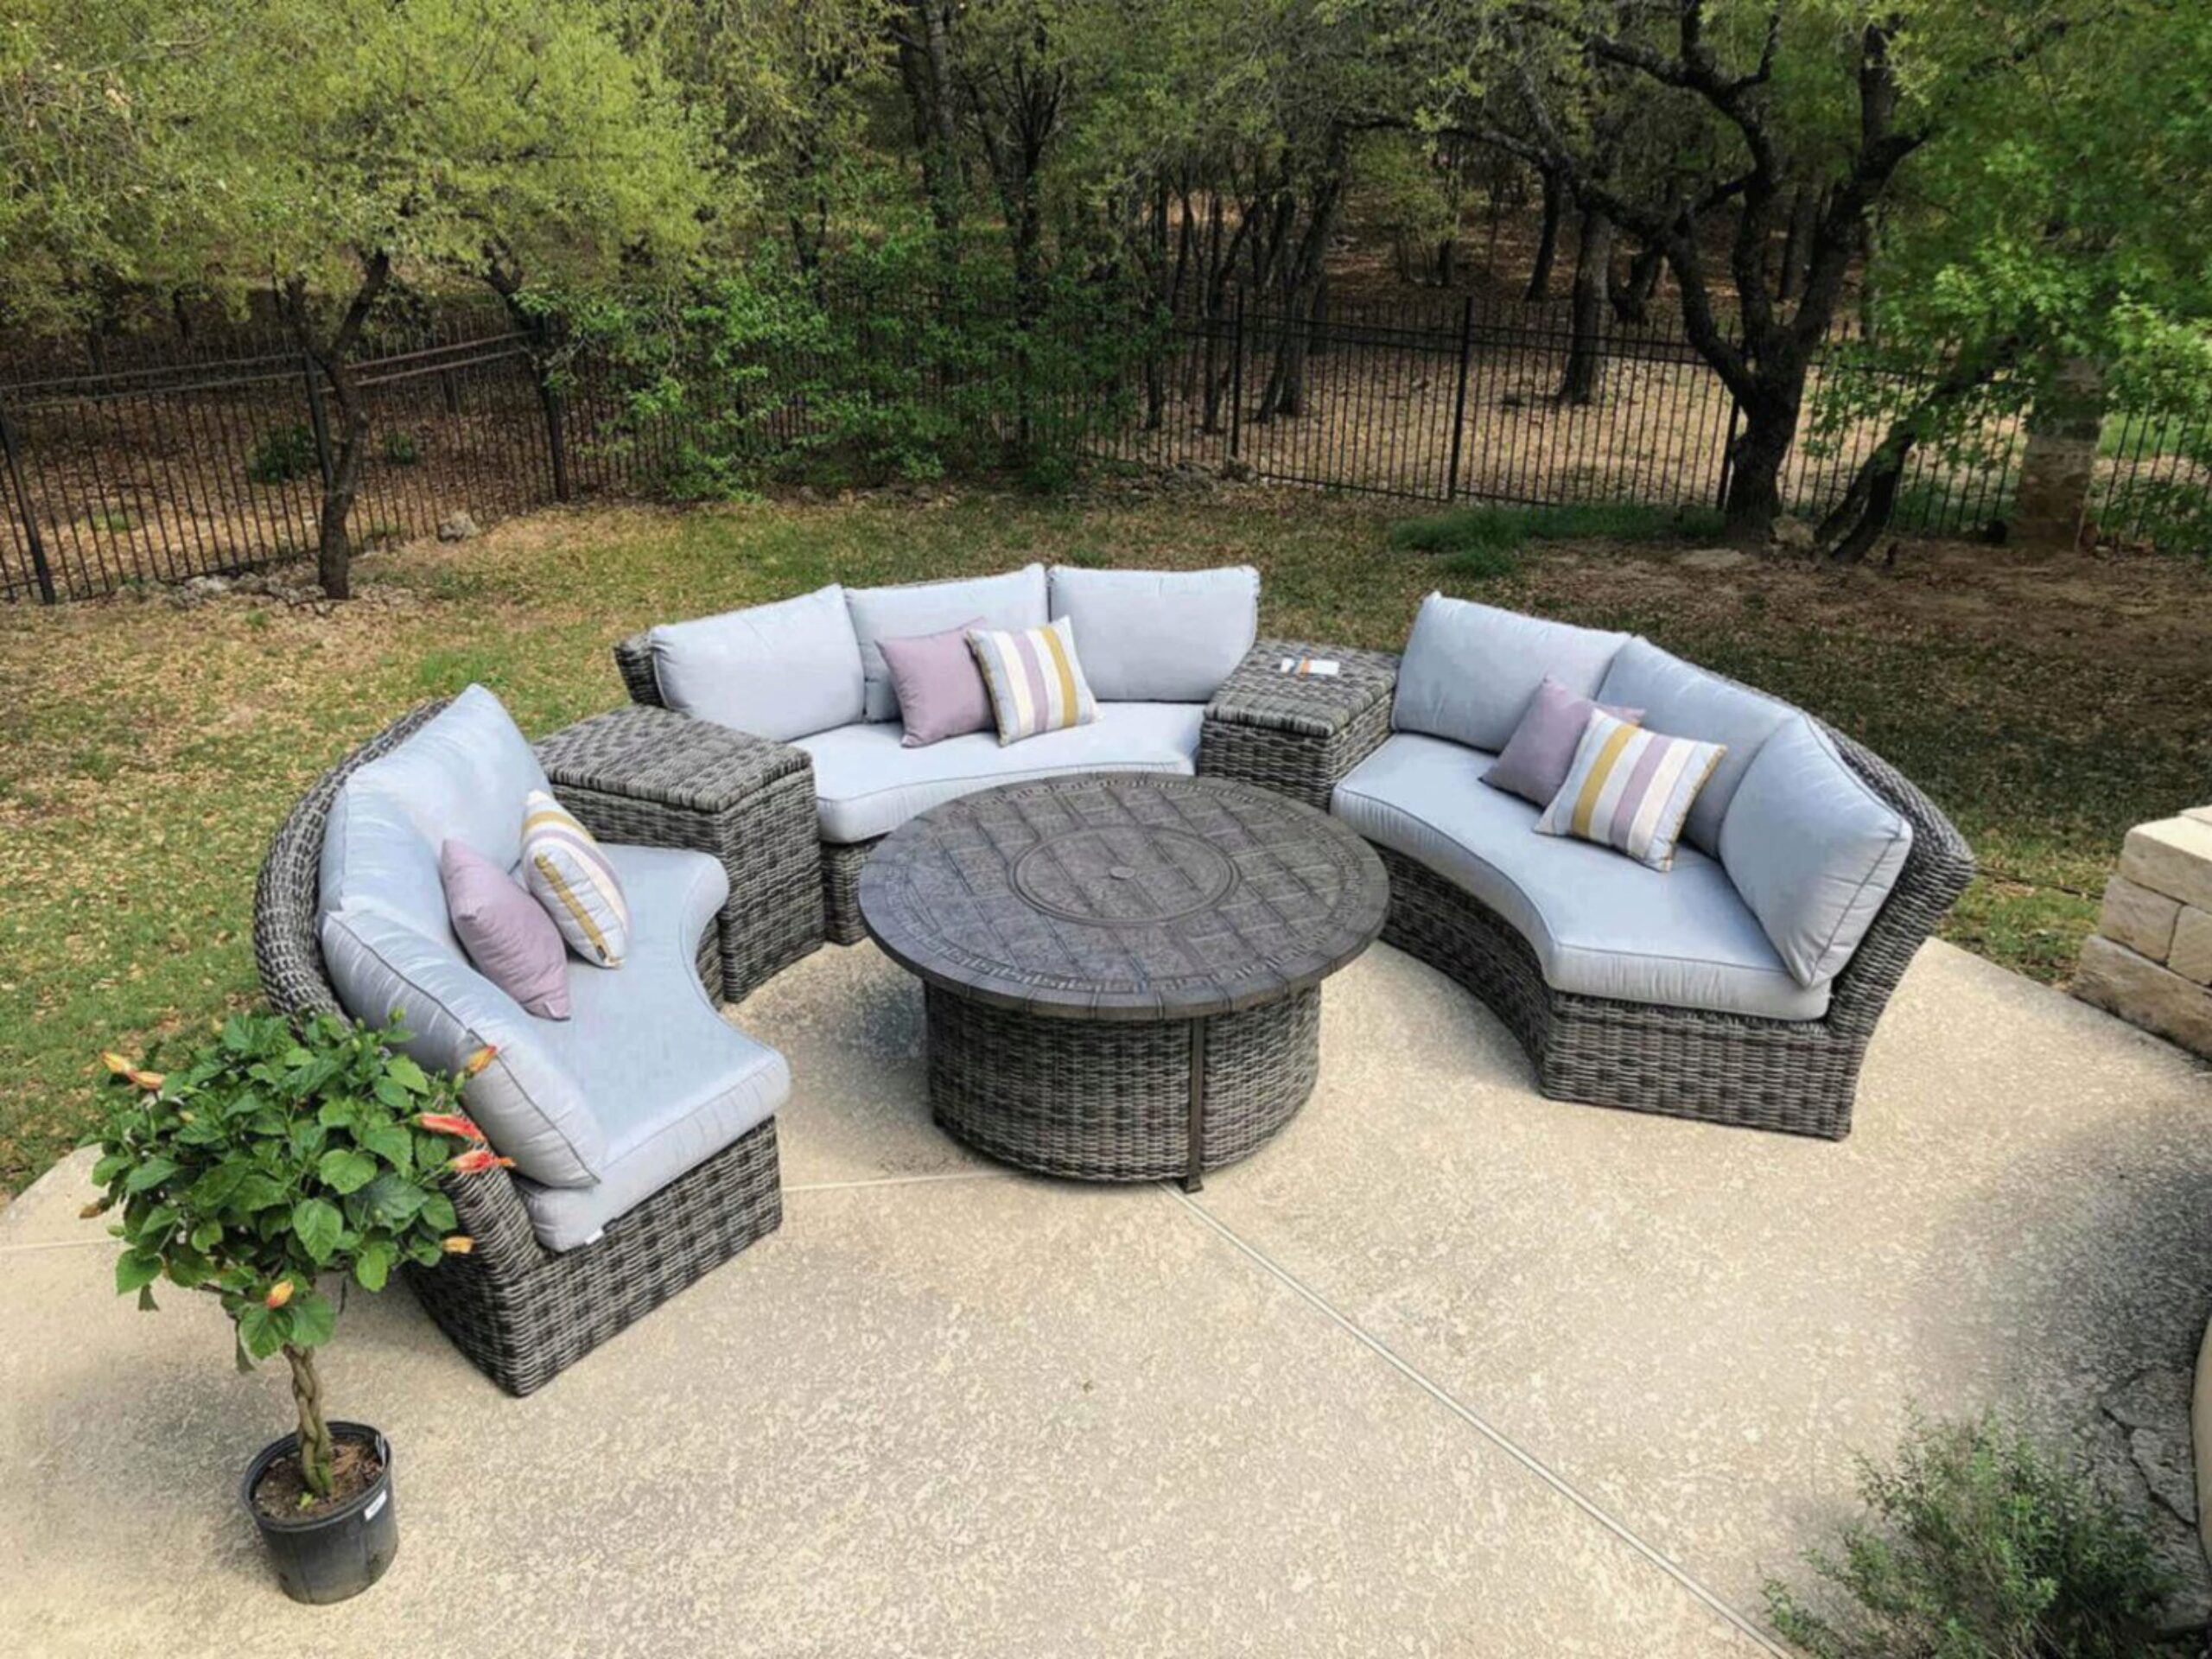 athena wicker fully welded curved circular sofa set 6pcs w firepit table by calipatio special order